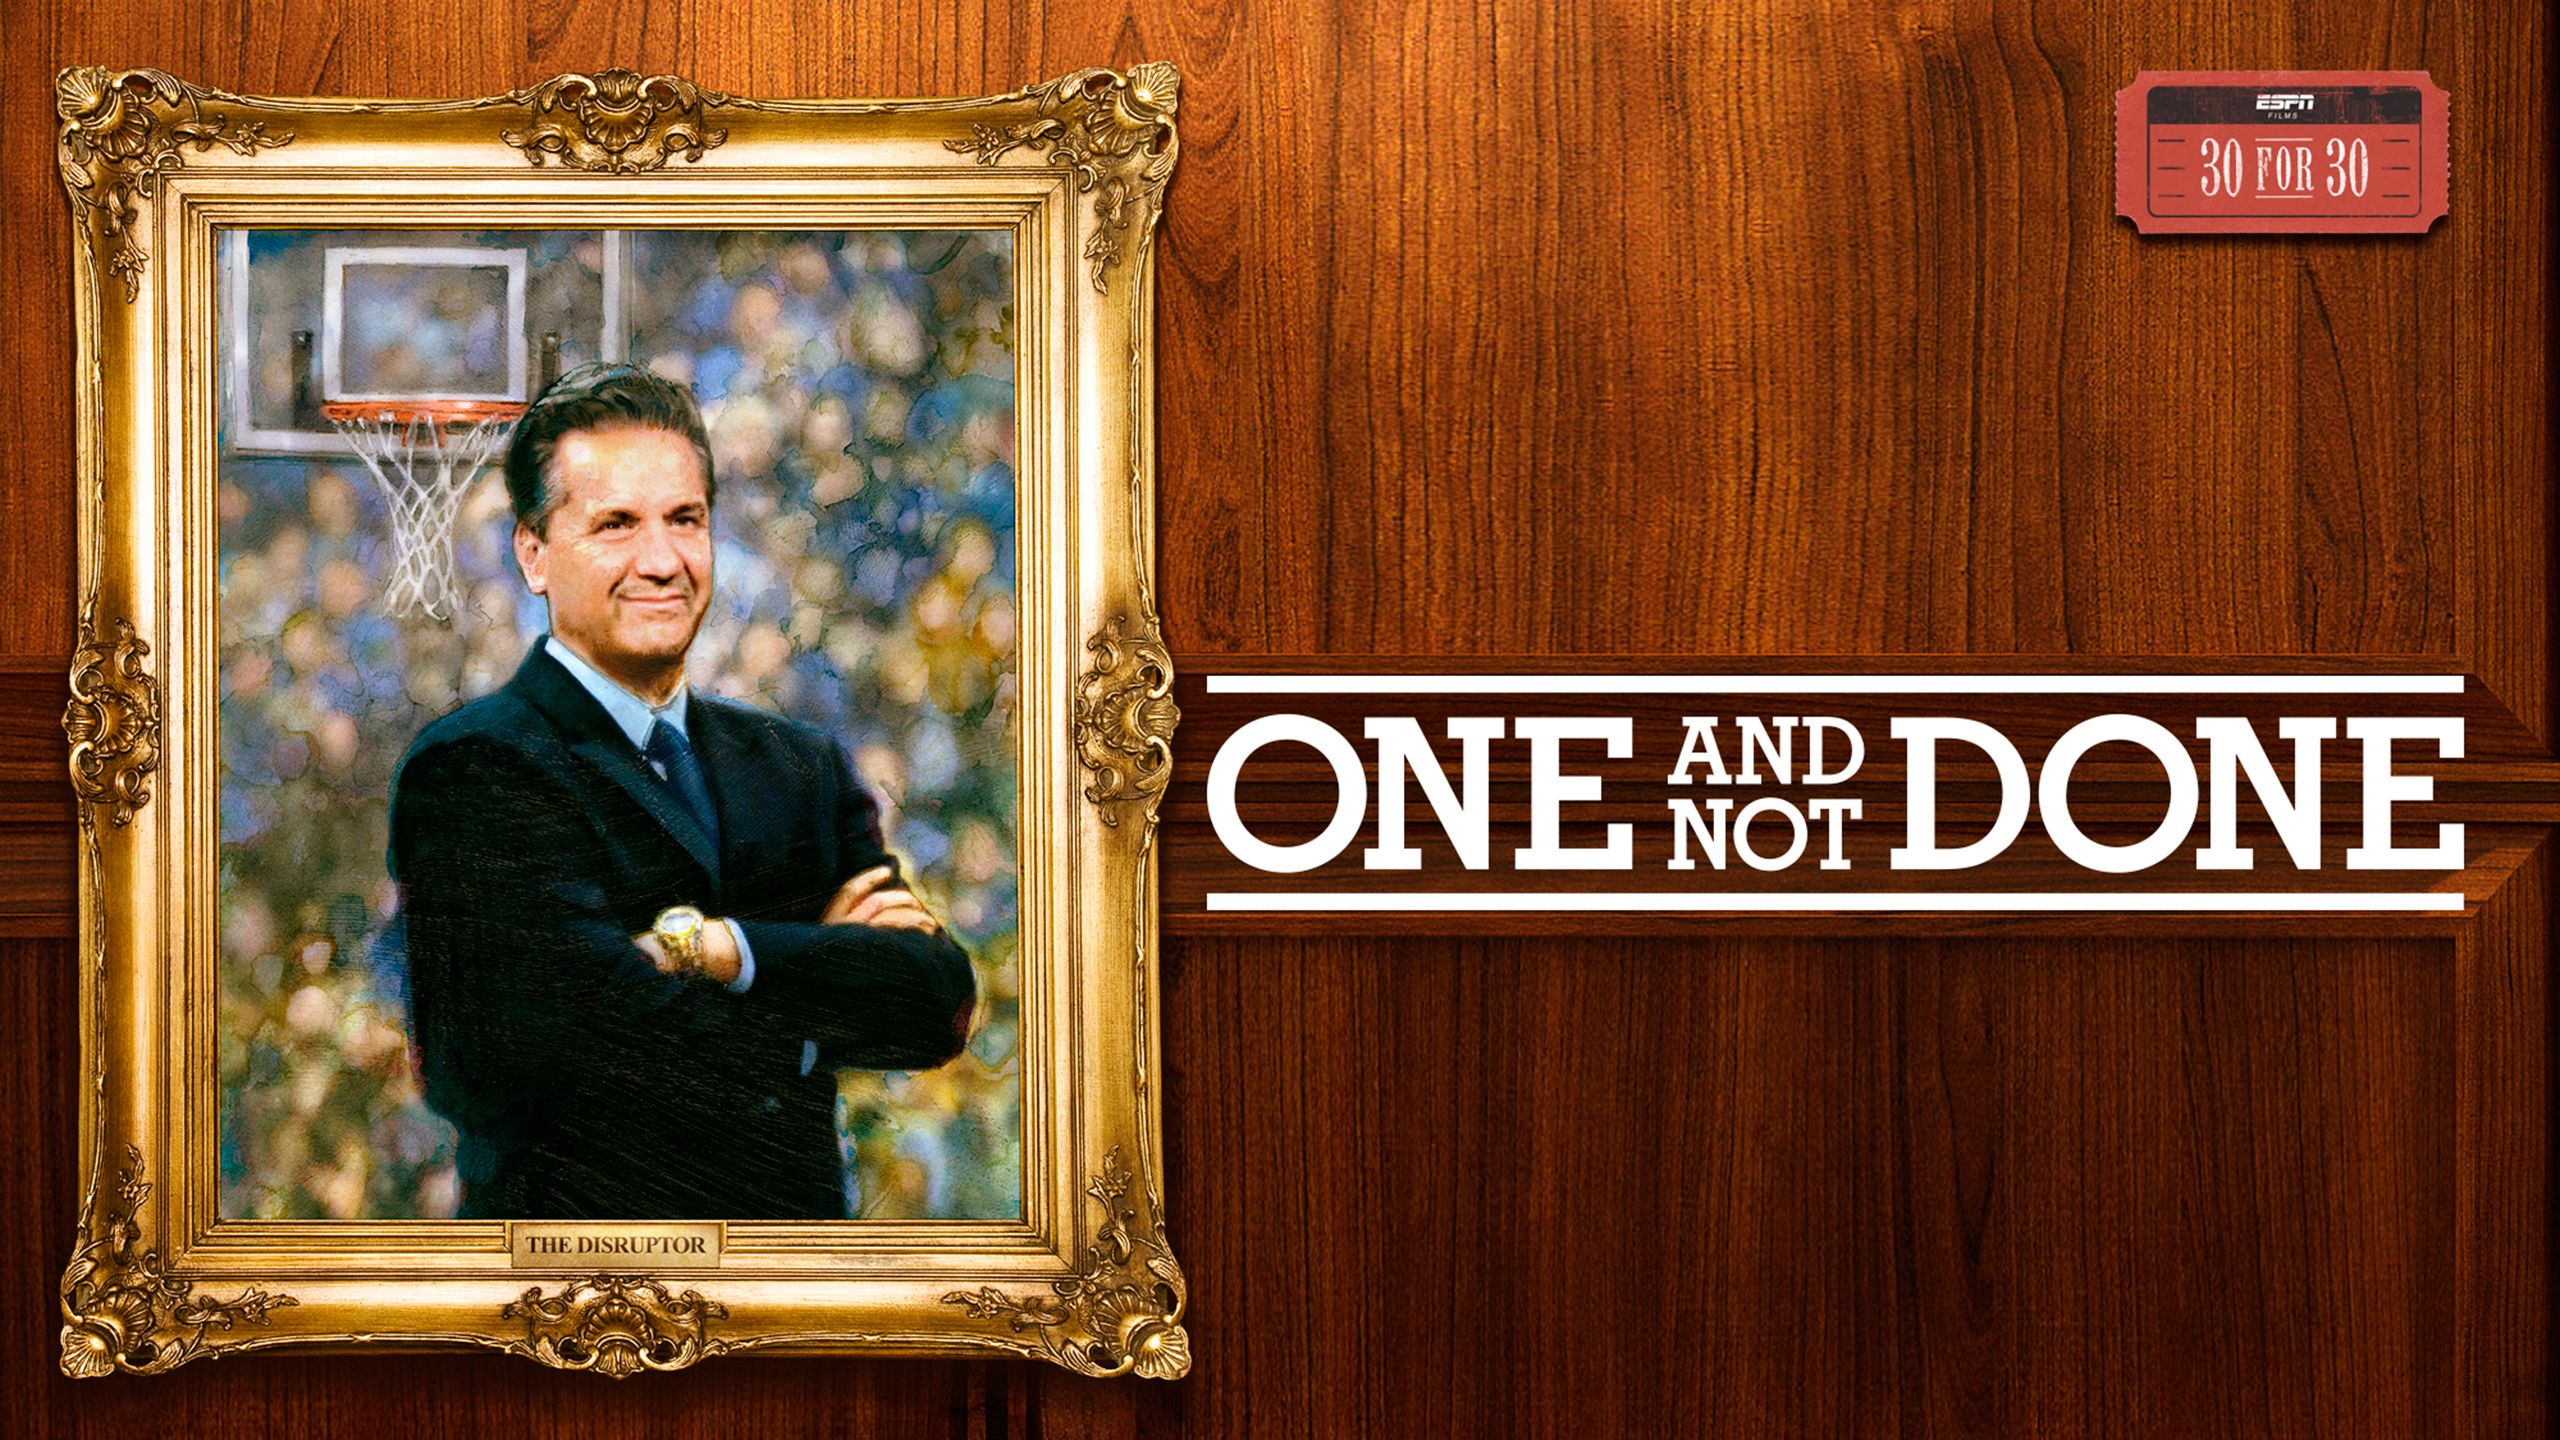 30 For 30: One and Not Done Presented by MINI